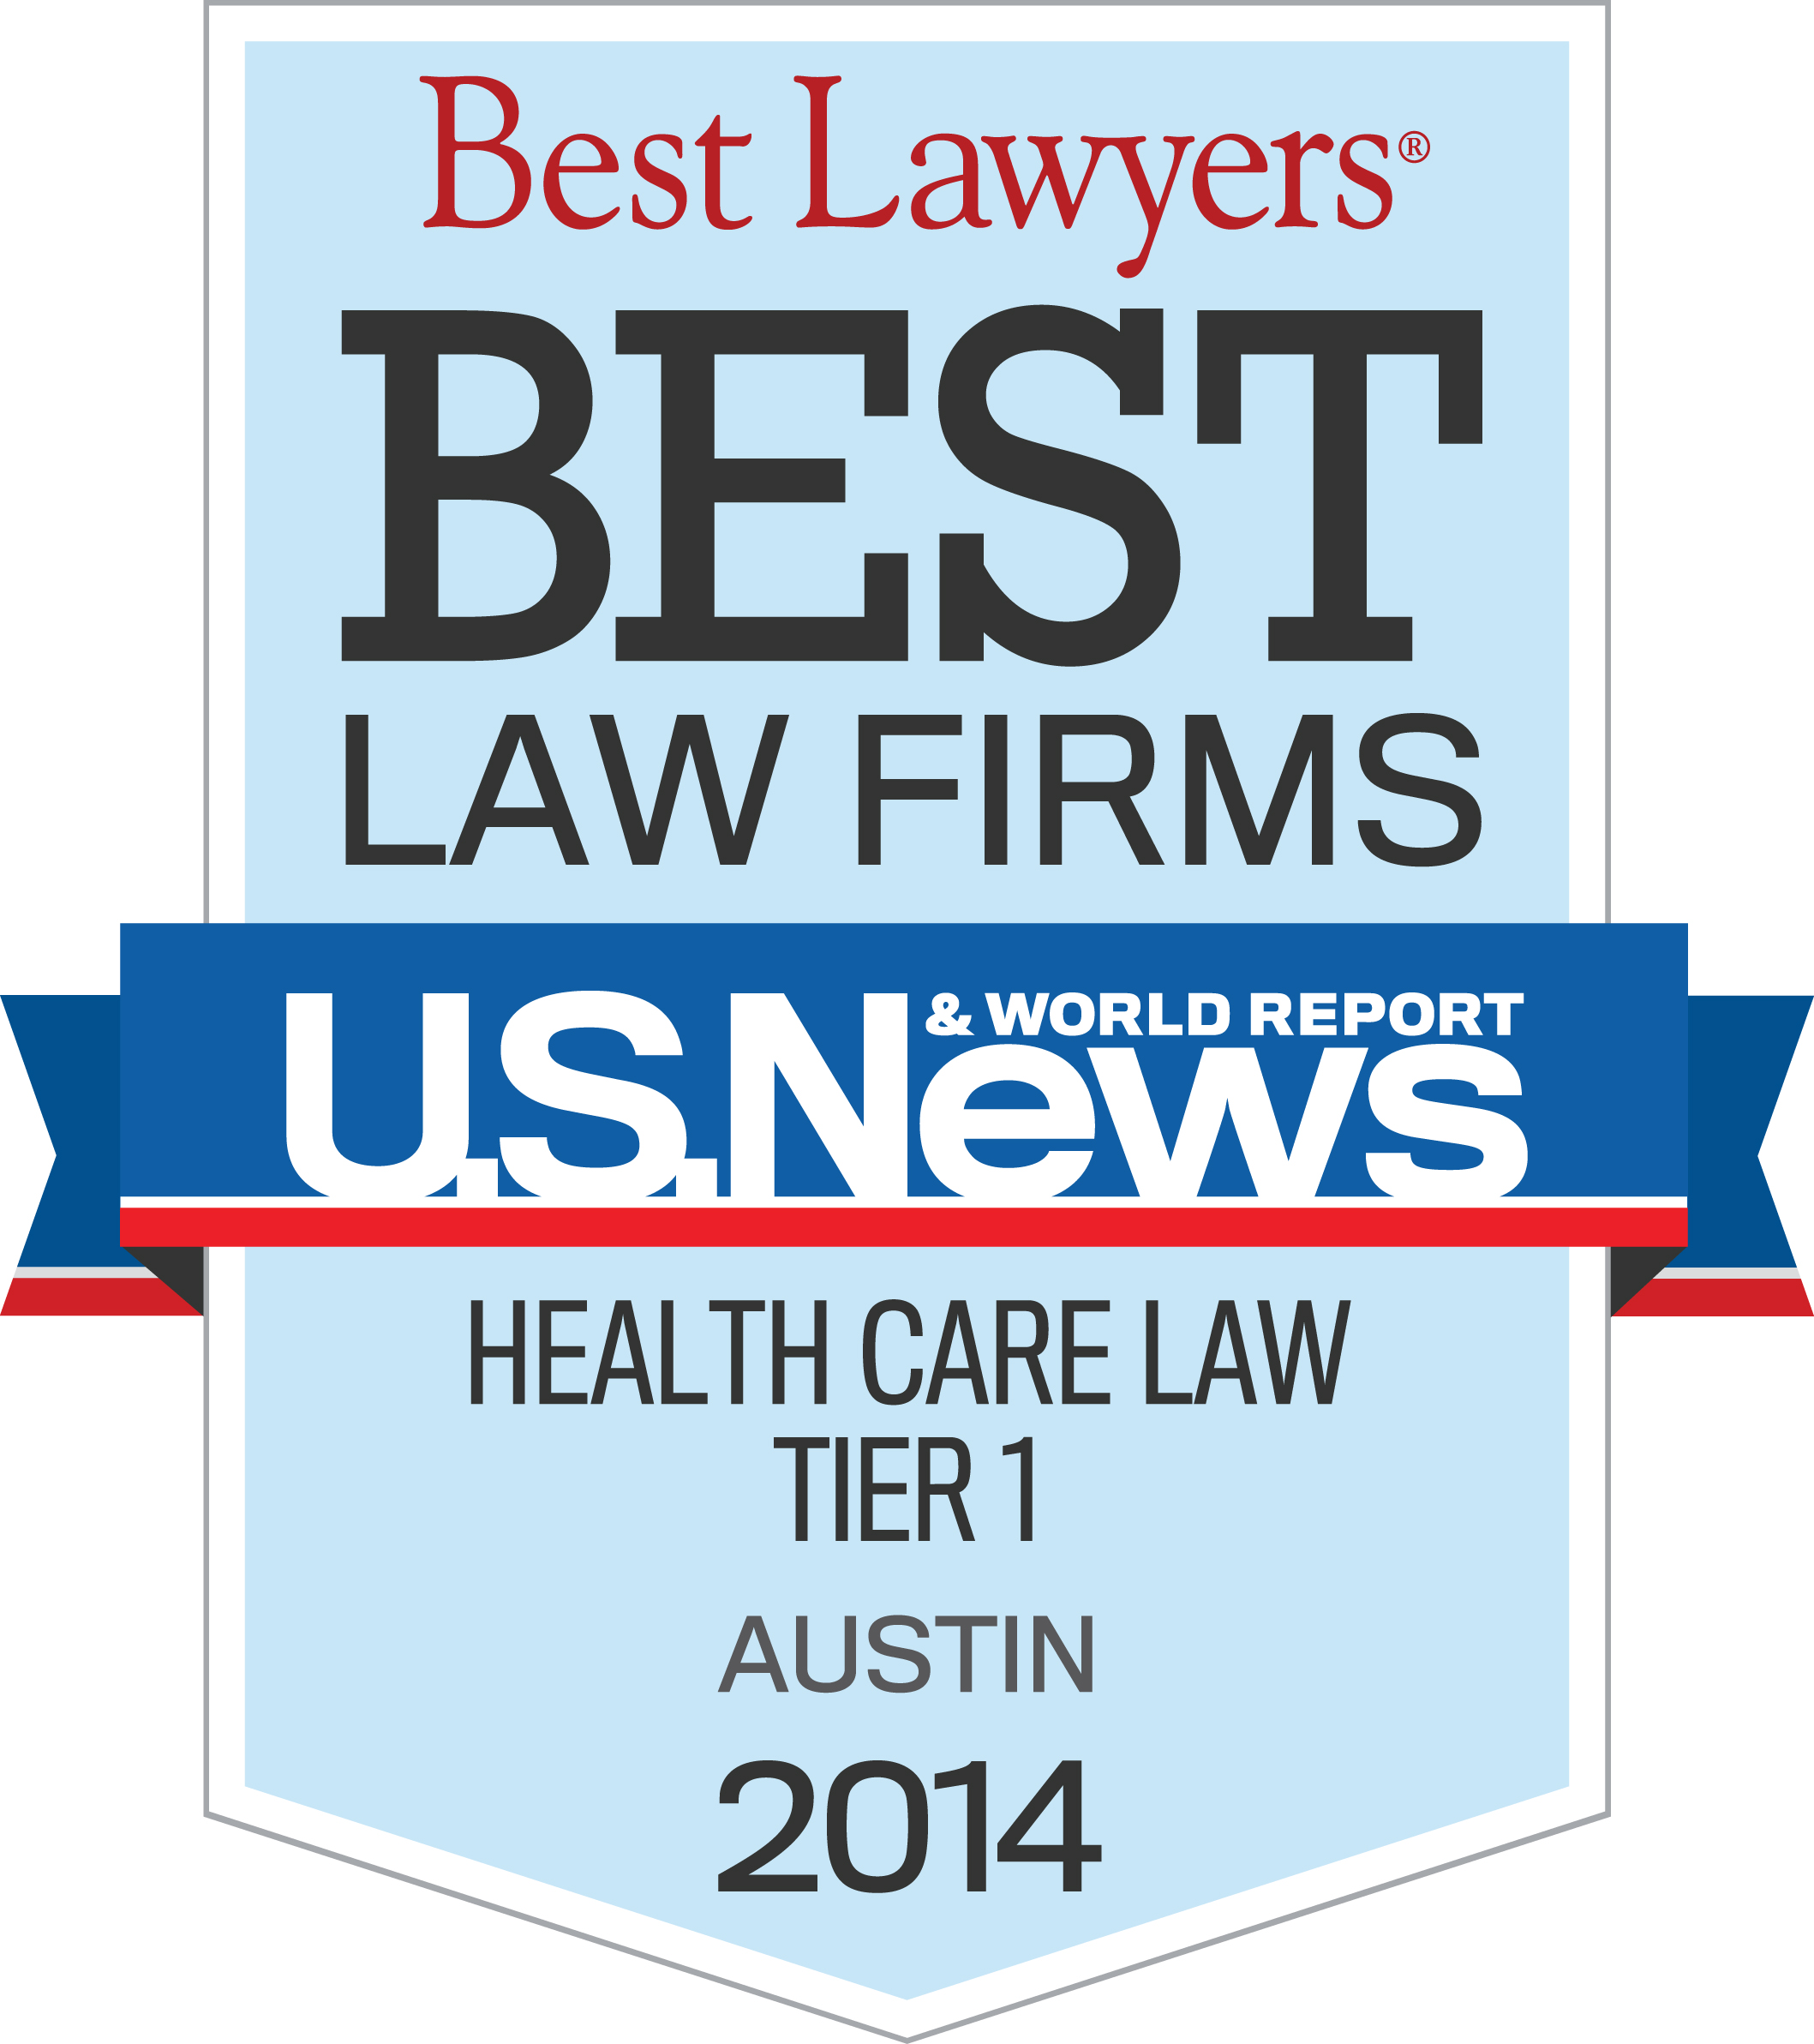 BLF-Augusta-ME-Tier-1-2014-Health-Care-Law